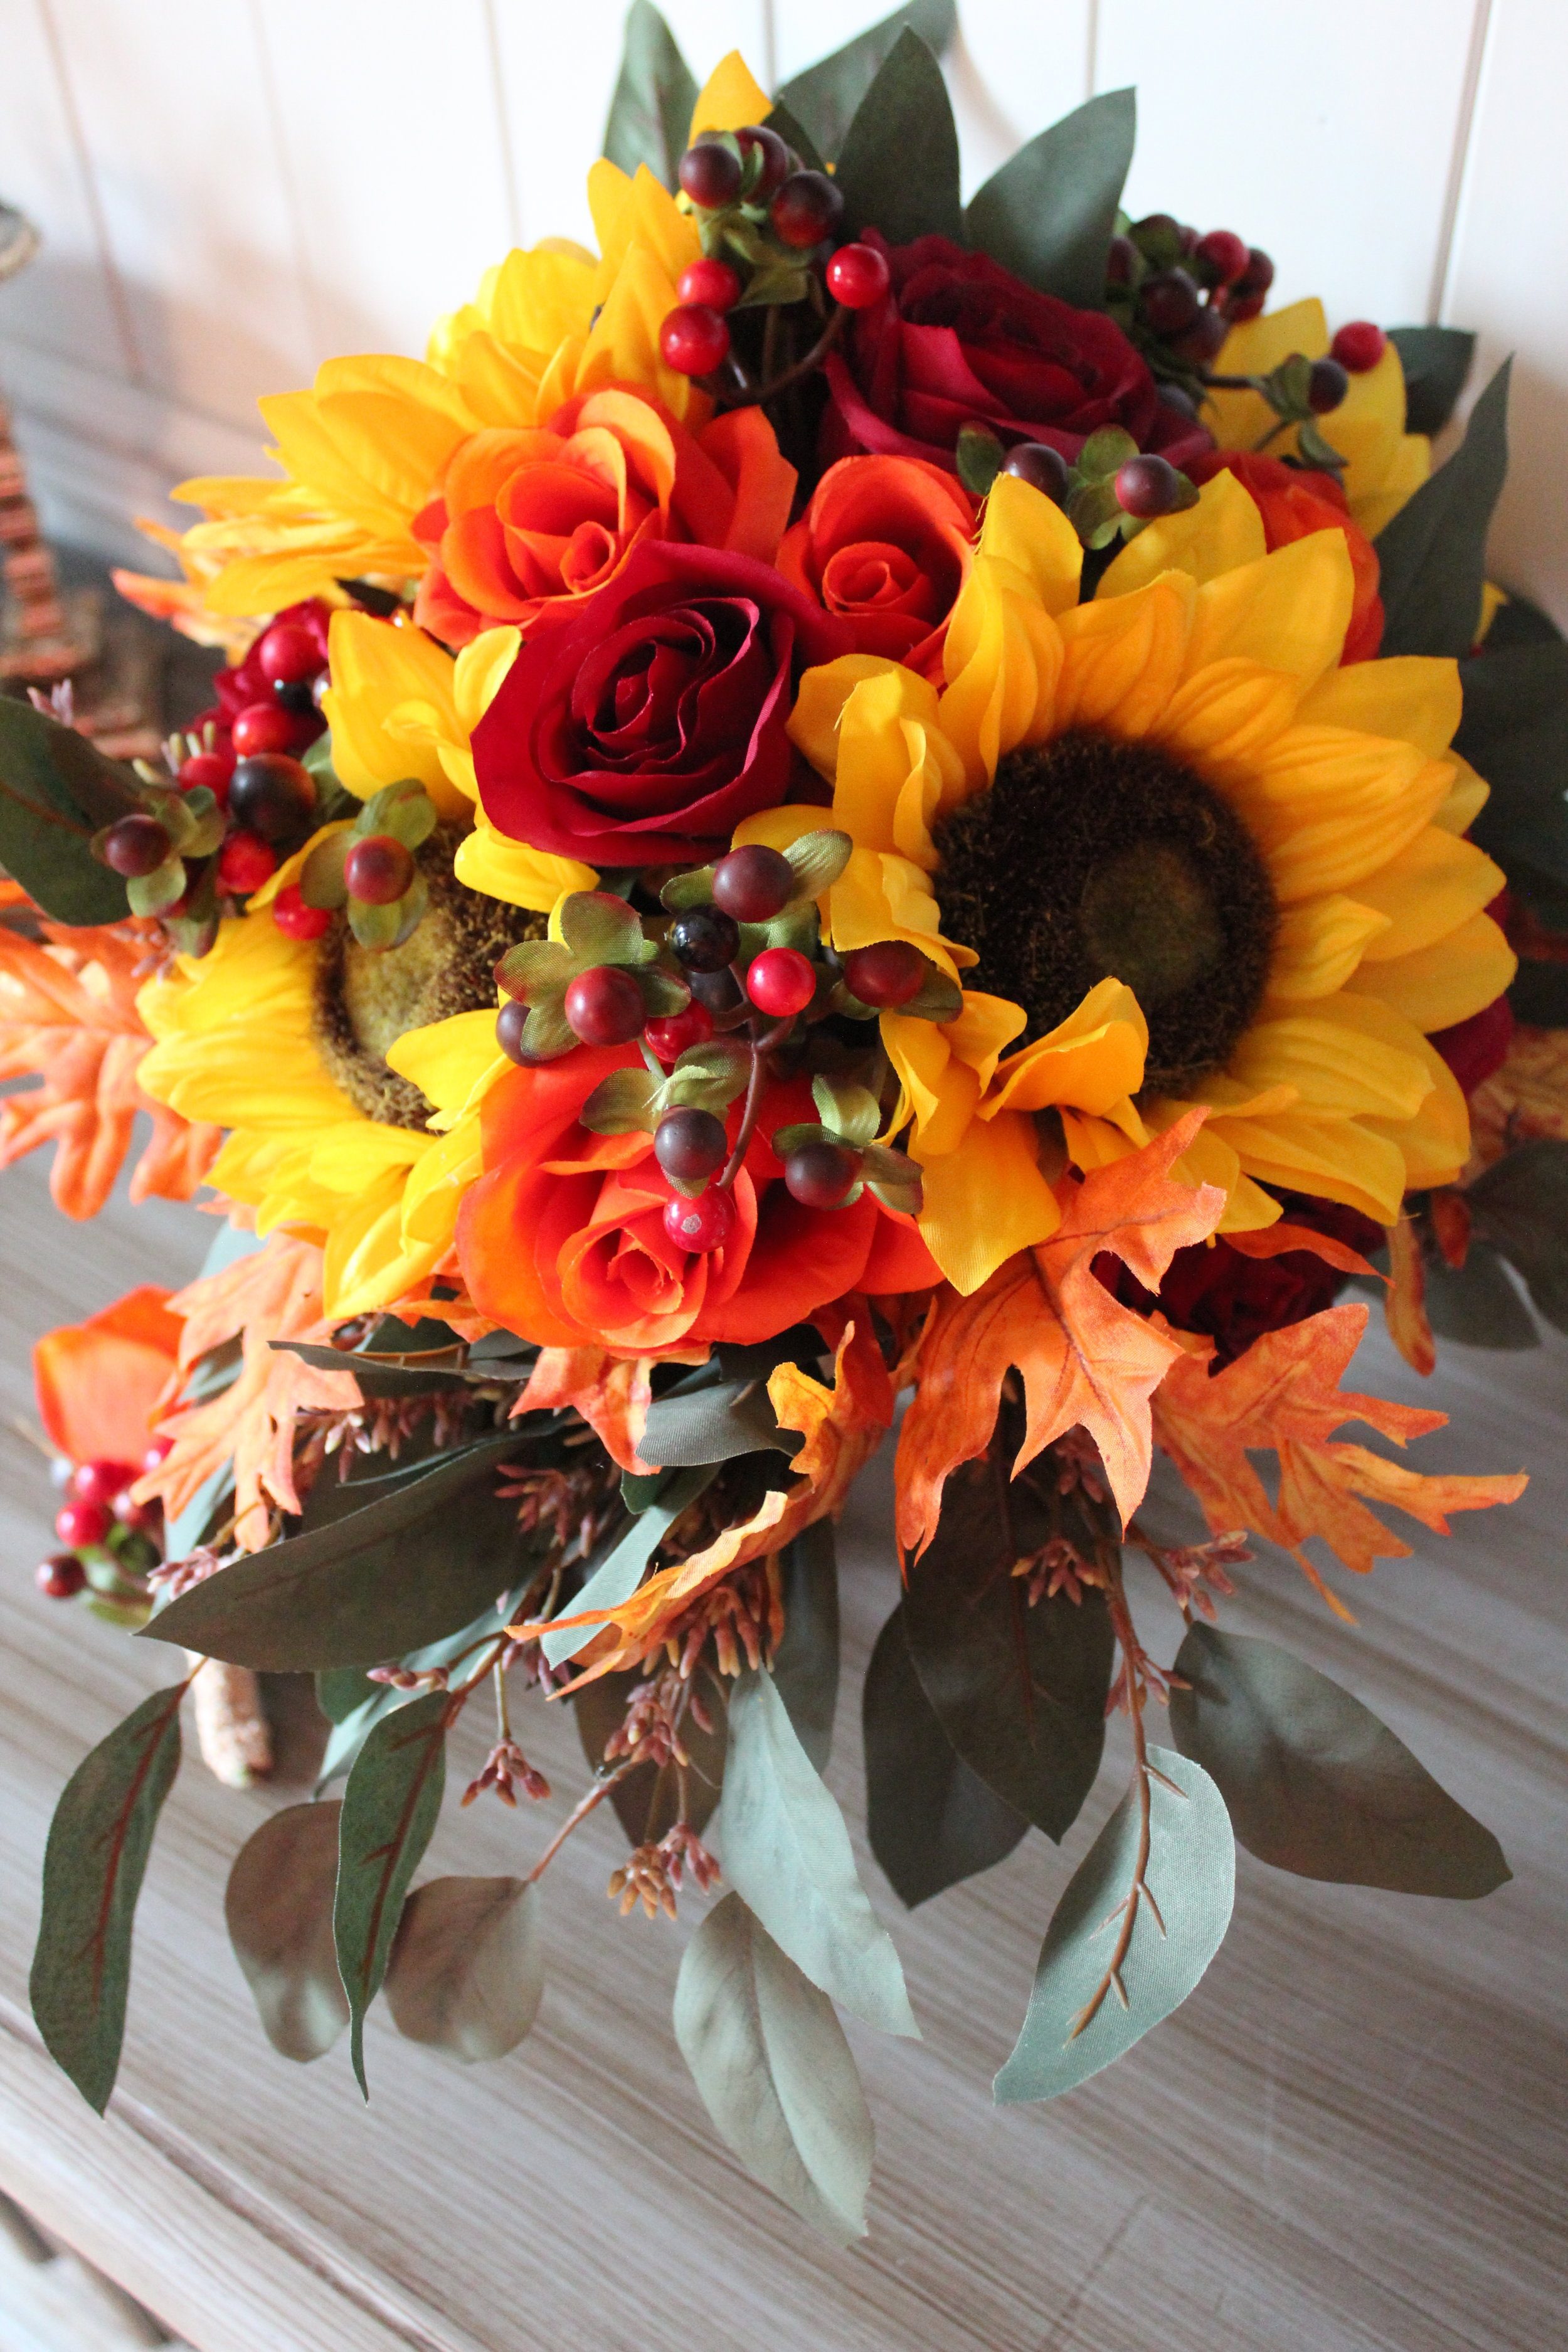 fall-wedding-bouquet-boutonniere-cake-topper-recreation-silk-flowers.jpg